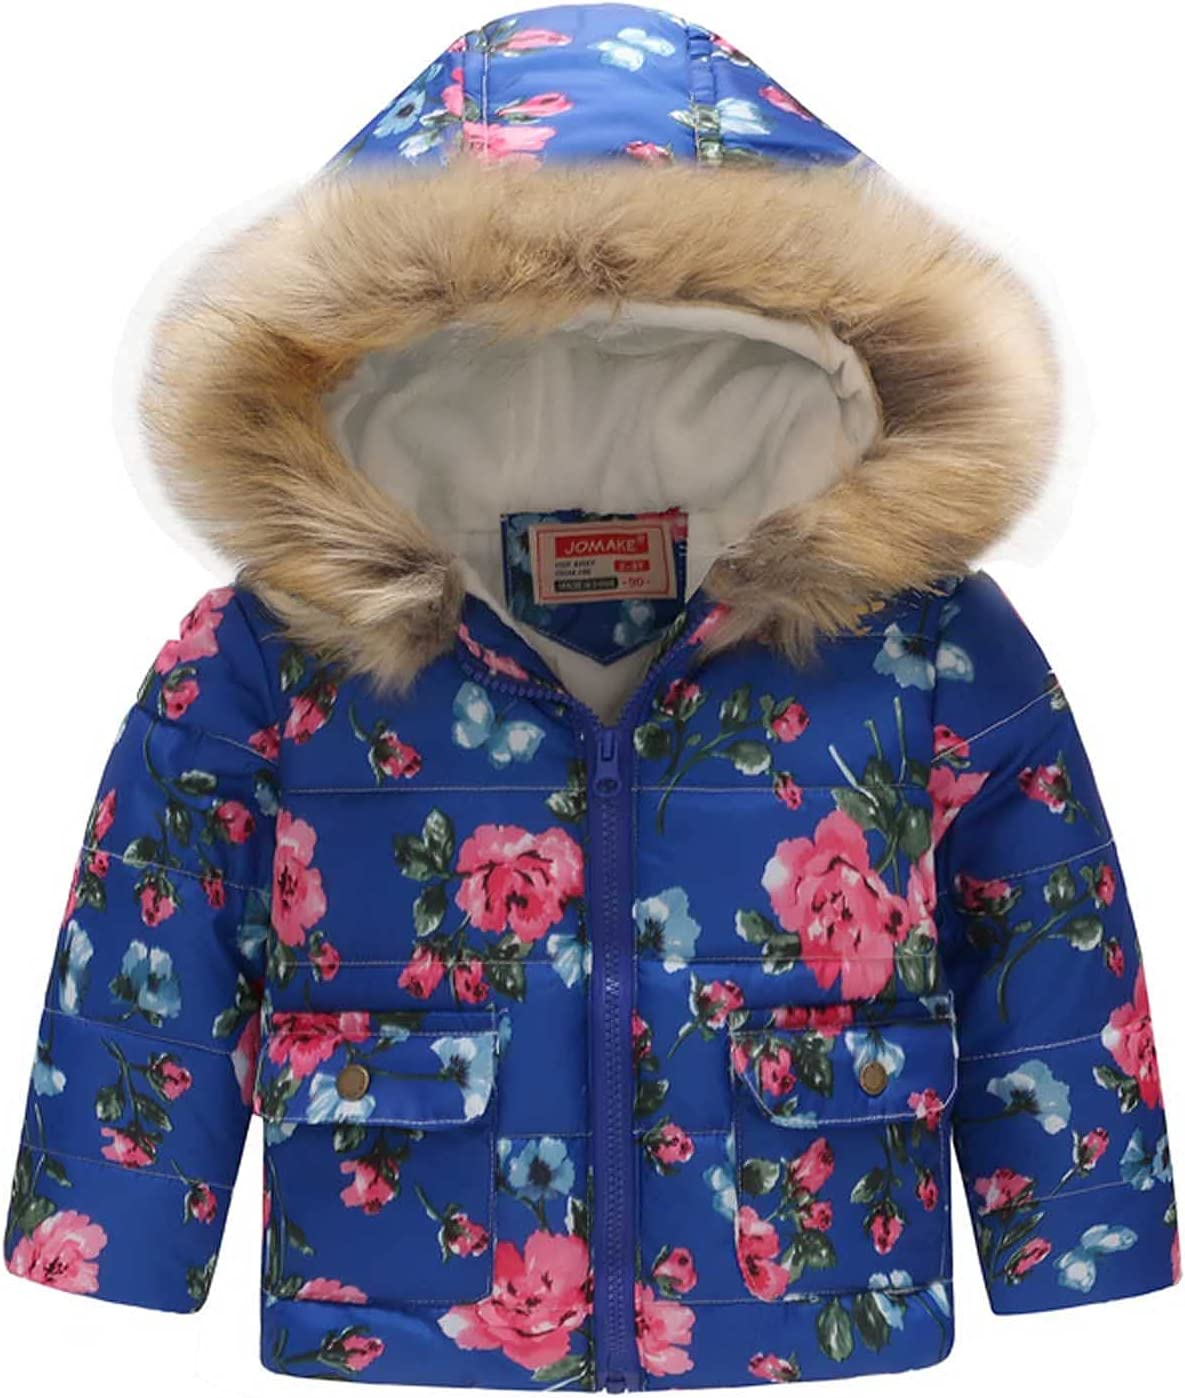 Boy's Winter Coat Thicken Padded Warm T Ranking TOP20 Hood Puffer with Trust Jacket